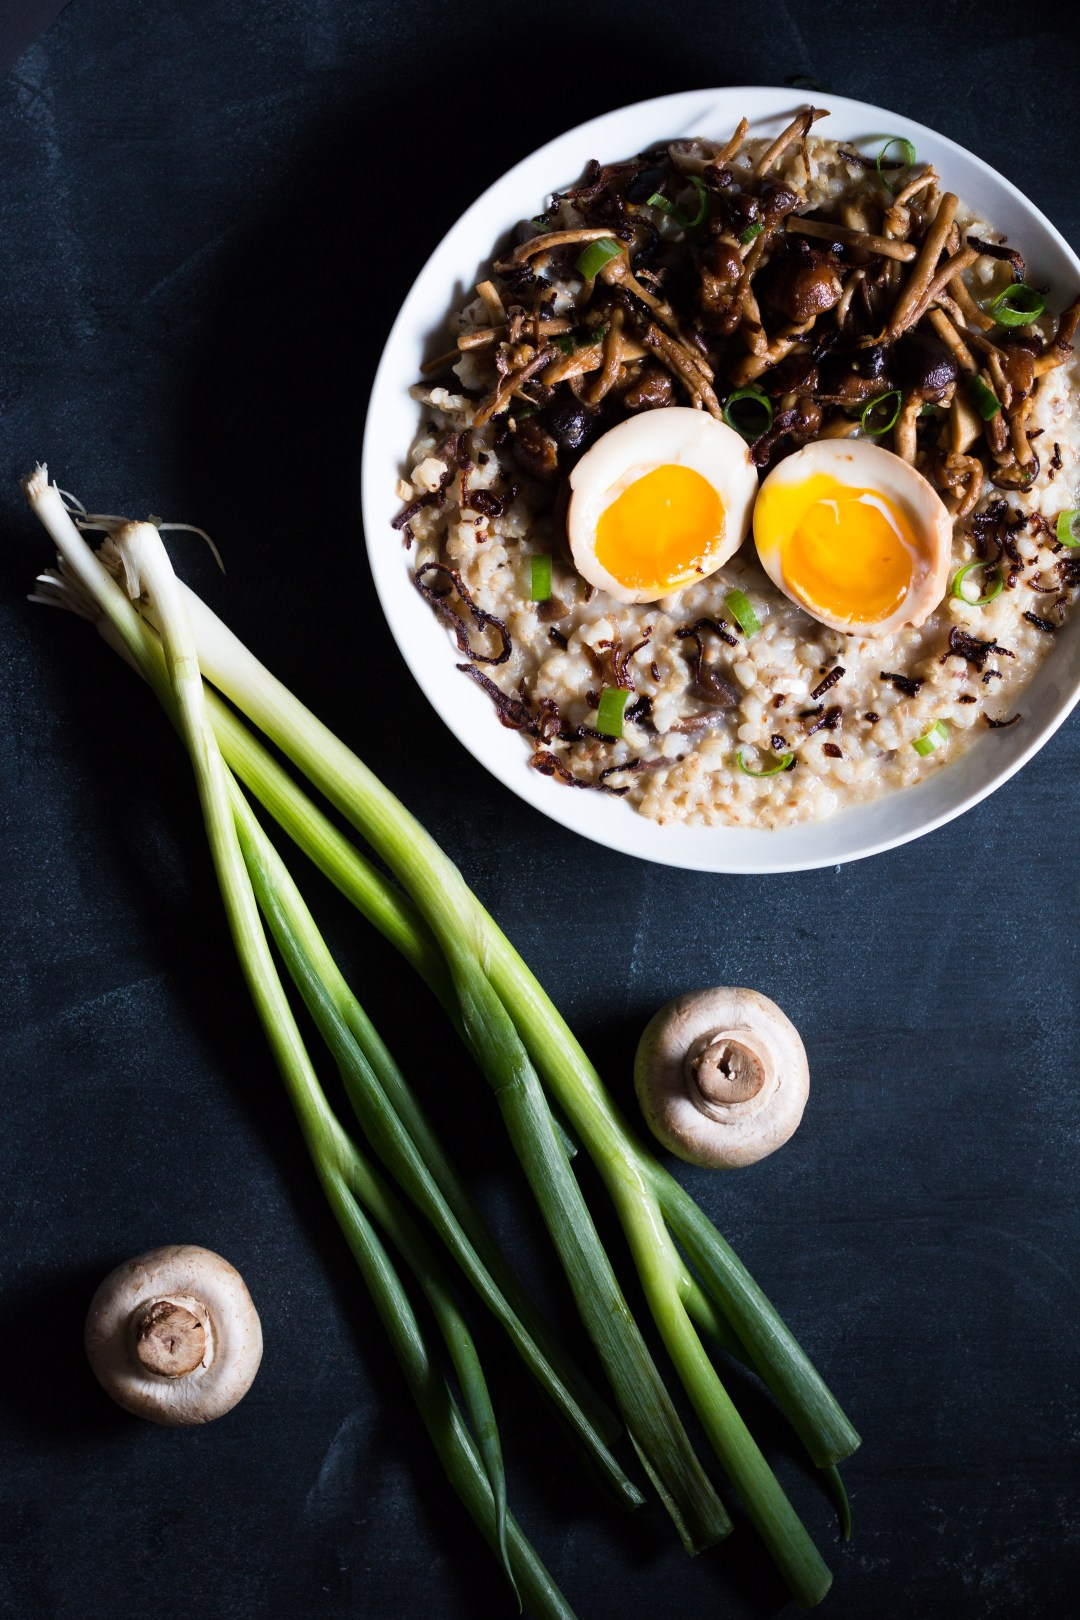 Overhead shot of a round bowl filled with congee, stir fried mushrooms, fried shallots, green onions, and a split ramen egg with runny yolks on a plain dark surface surrounded by two raw mushrooms and a green onion stalk.